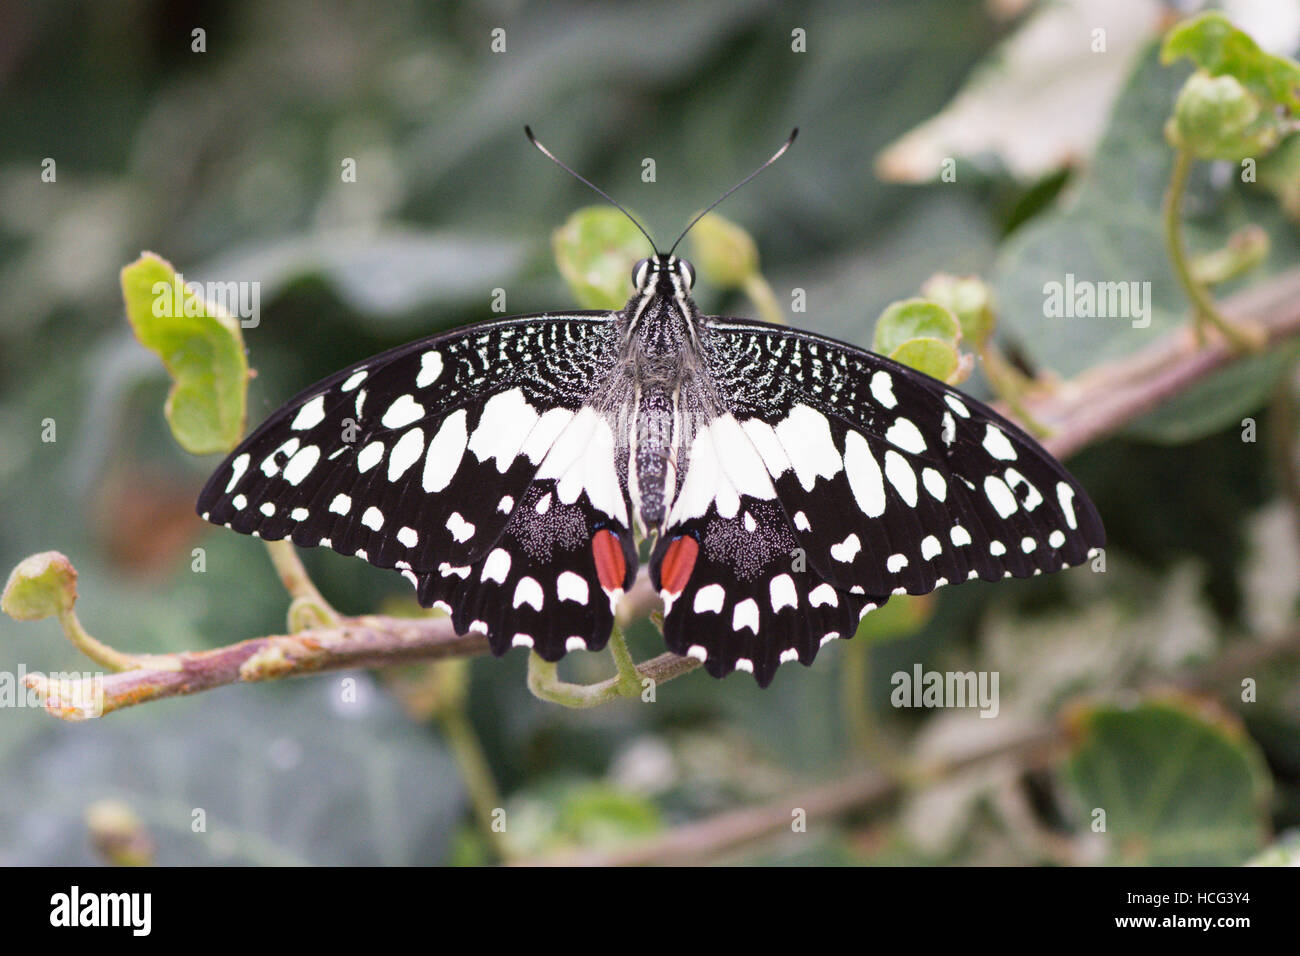 Papilio demodocus, Citrus Swallowtail or Christmas Butterfly Stock ...